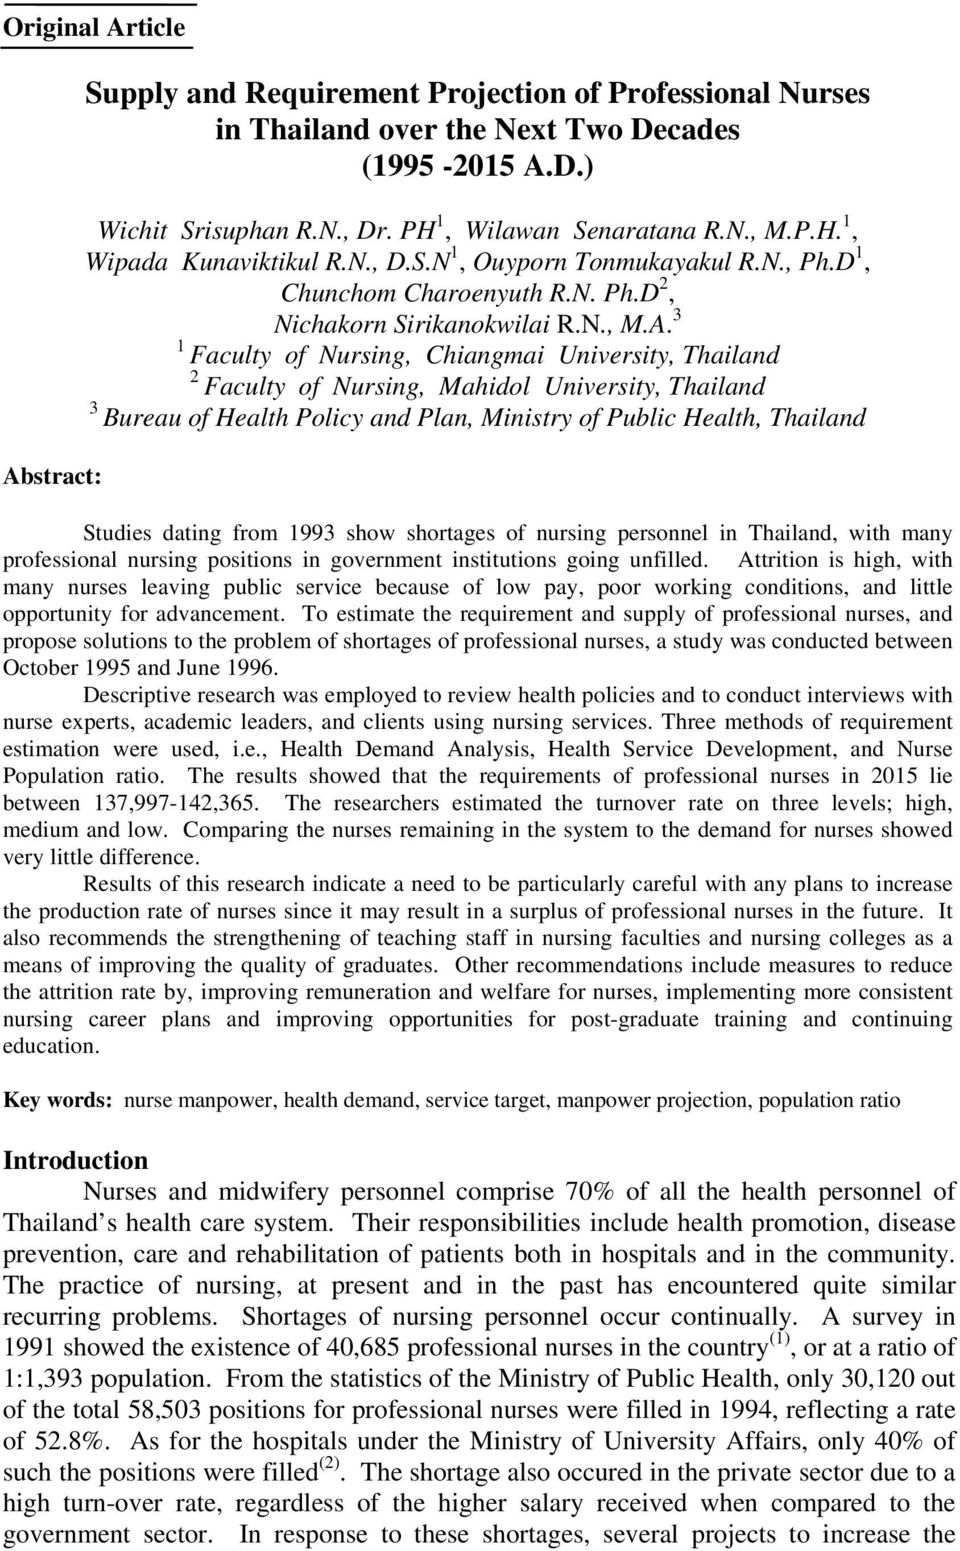 3 1 Faculty of Nursing, Chiangmai University, Thailand 2 Faculty of Nursing, Mahidol University, Thailand 3 Bureau of Health Policy and Plan, Ministry of Public Health, Thailand Abstract: Studies